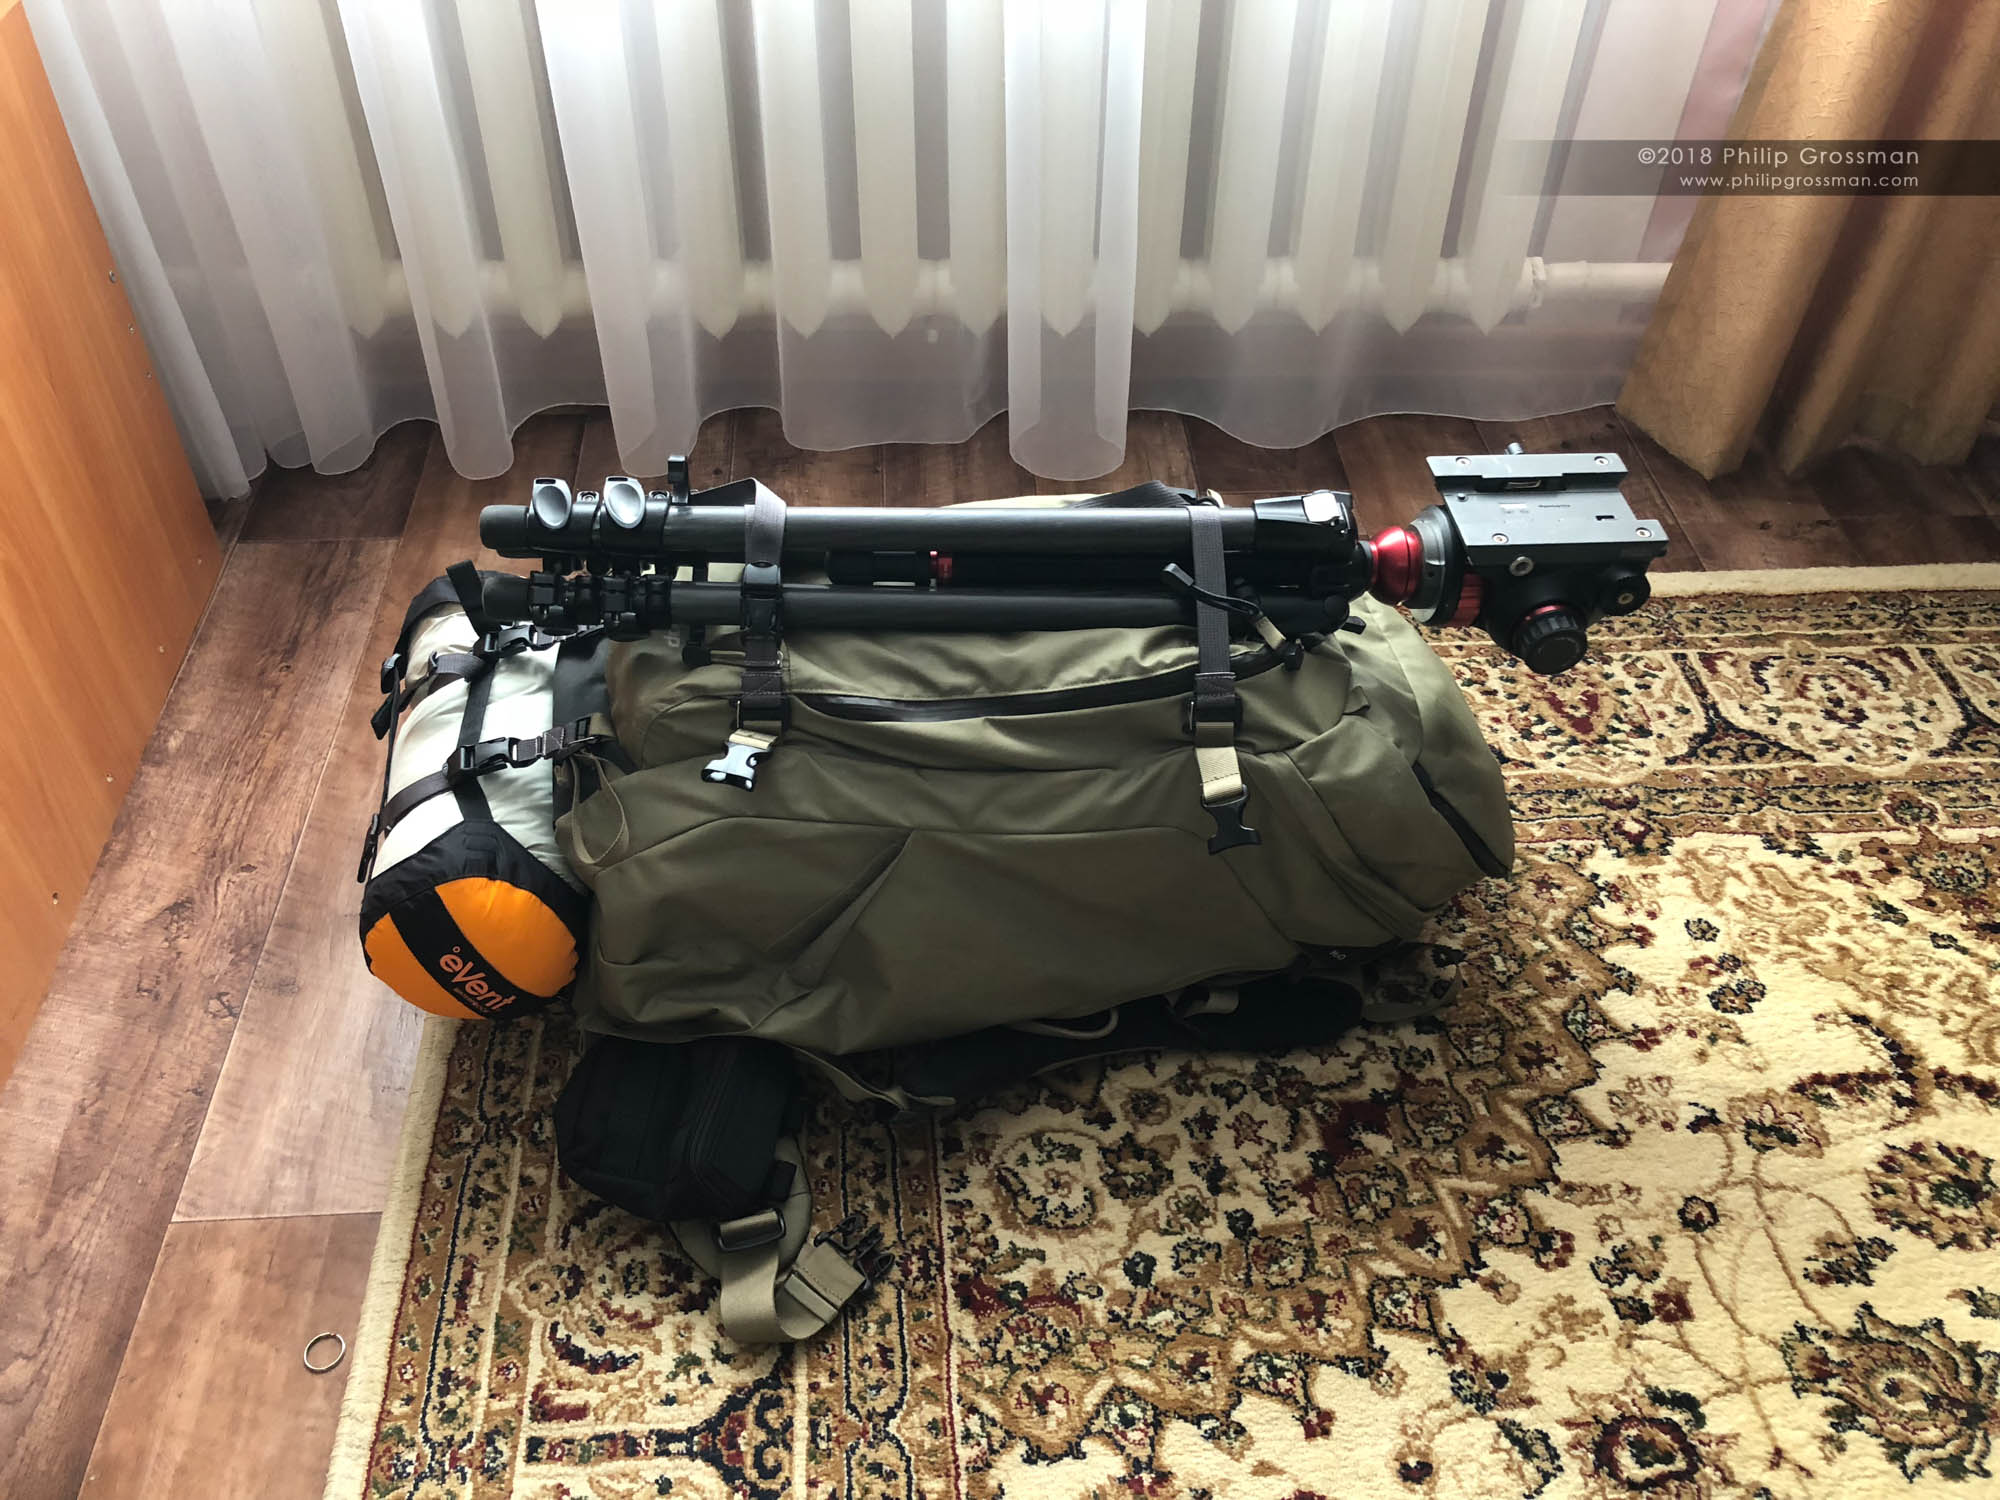 Philip's fStop Gear Suhka bag packed and ready for the 26 mile hike through the Kazakhstan high desert step.